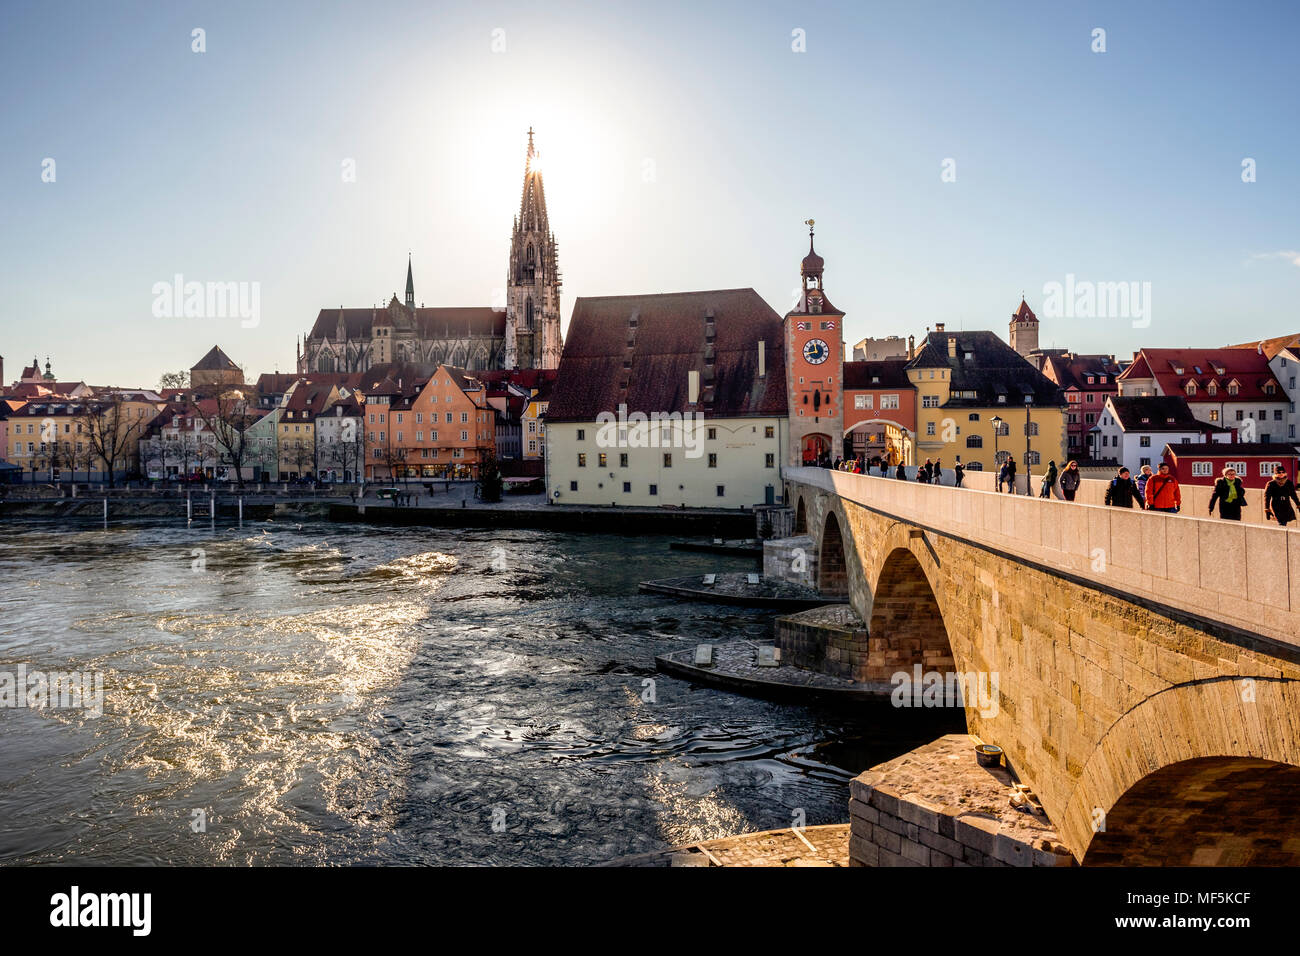 Germany, Regensburg, view to cathedral at the old town with Steinerne Bruecke over Danube river - Stock Image